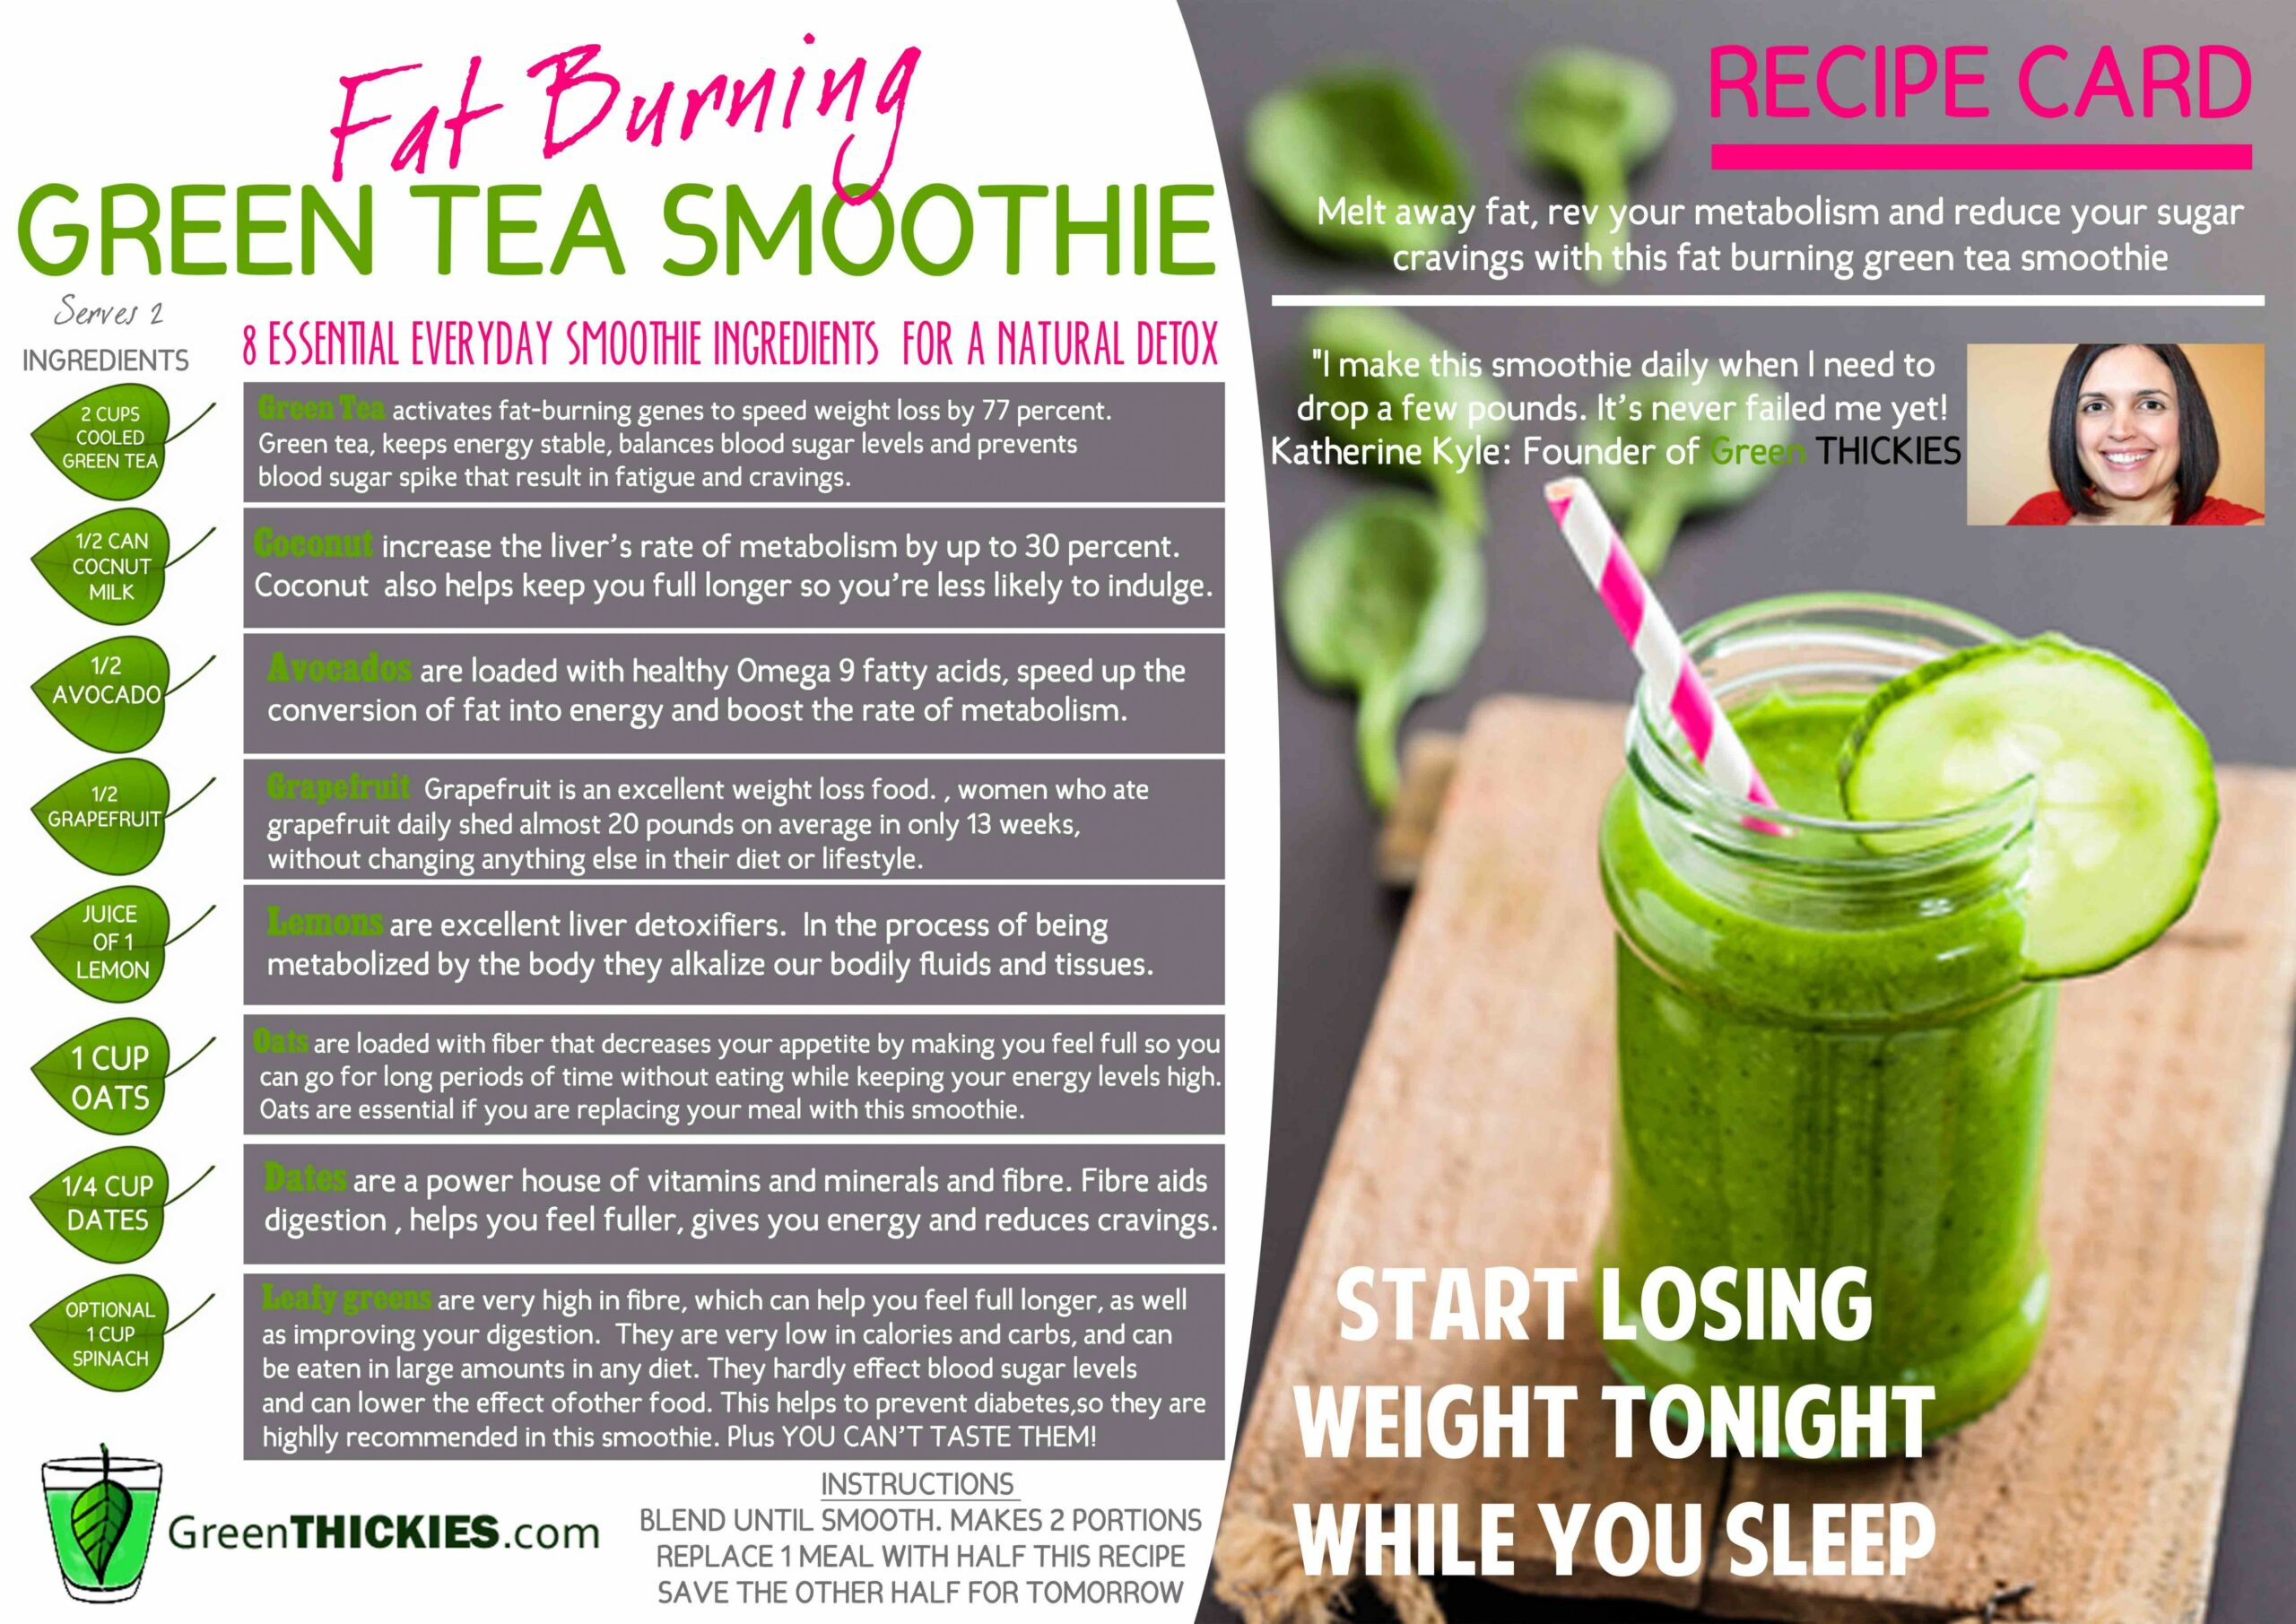 Healthy Weight Loss Smoothie Recipes Uk - Image Of Food Recipe - Nutribullet Recipes For Weight Loss And Energy